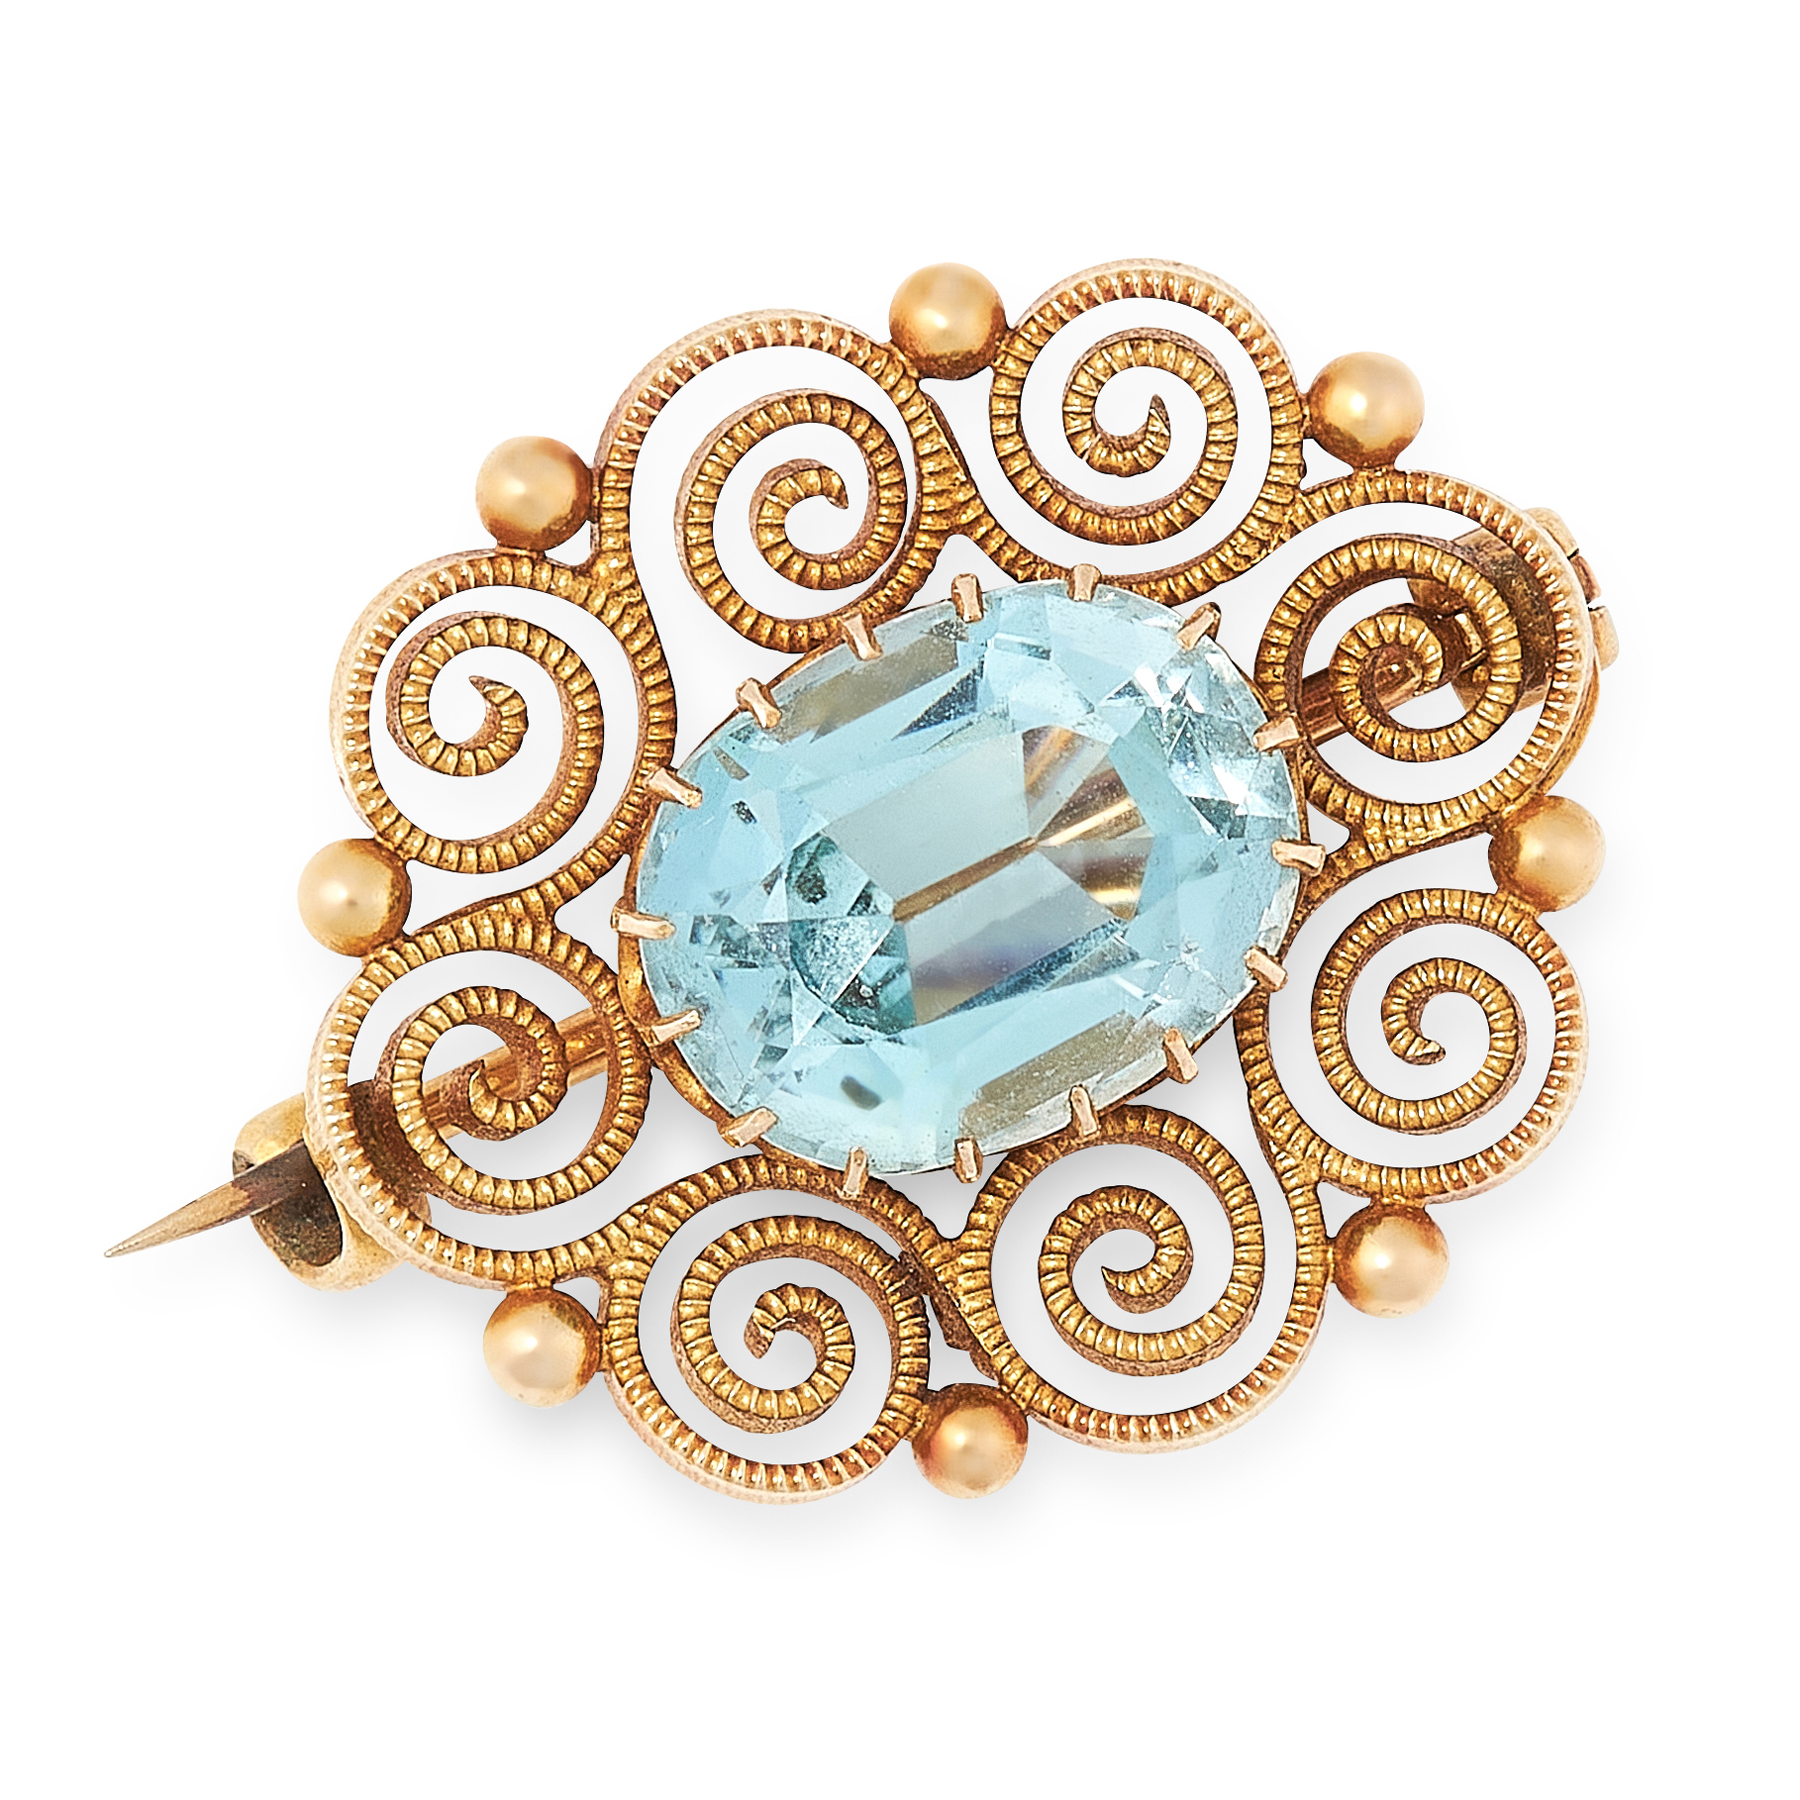 A ZIRCON BROOCH in high carat yellow gold, set with an oval cut zircon of 6.85 carats, within a